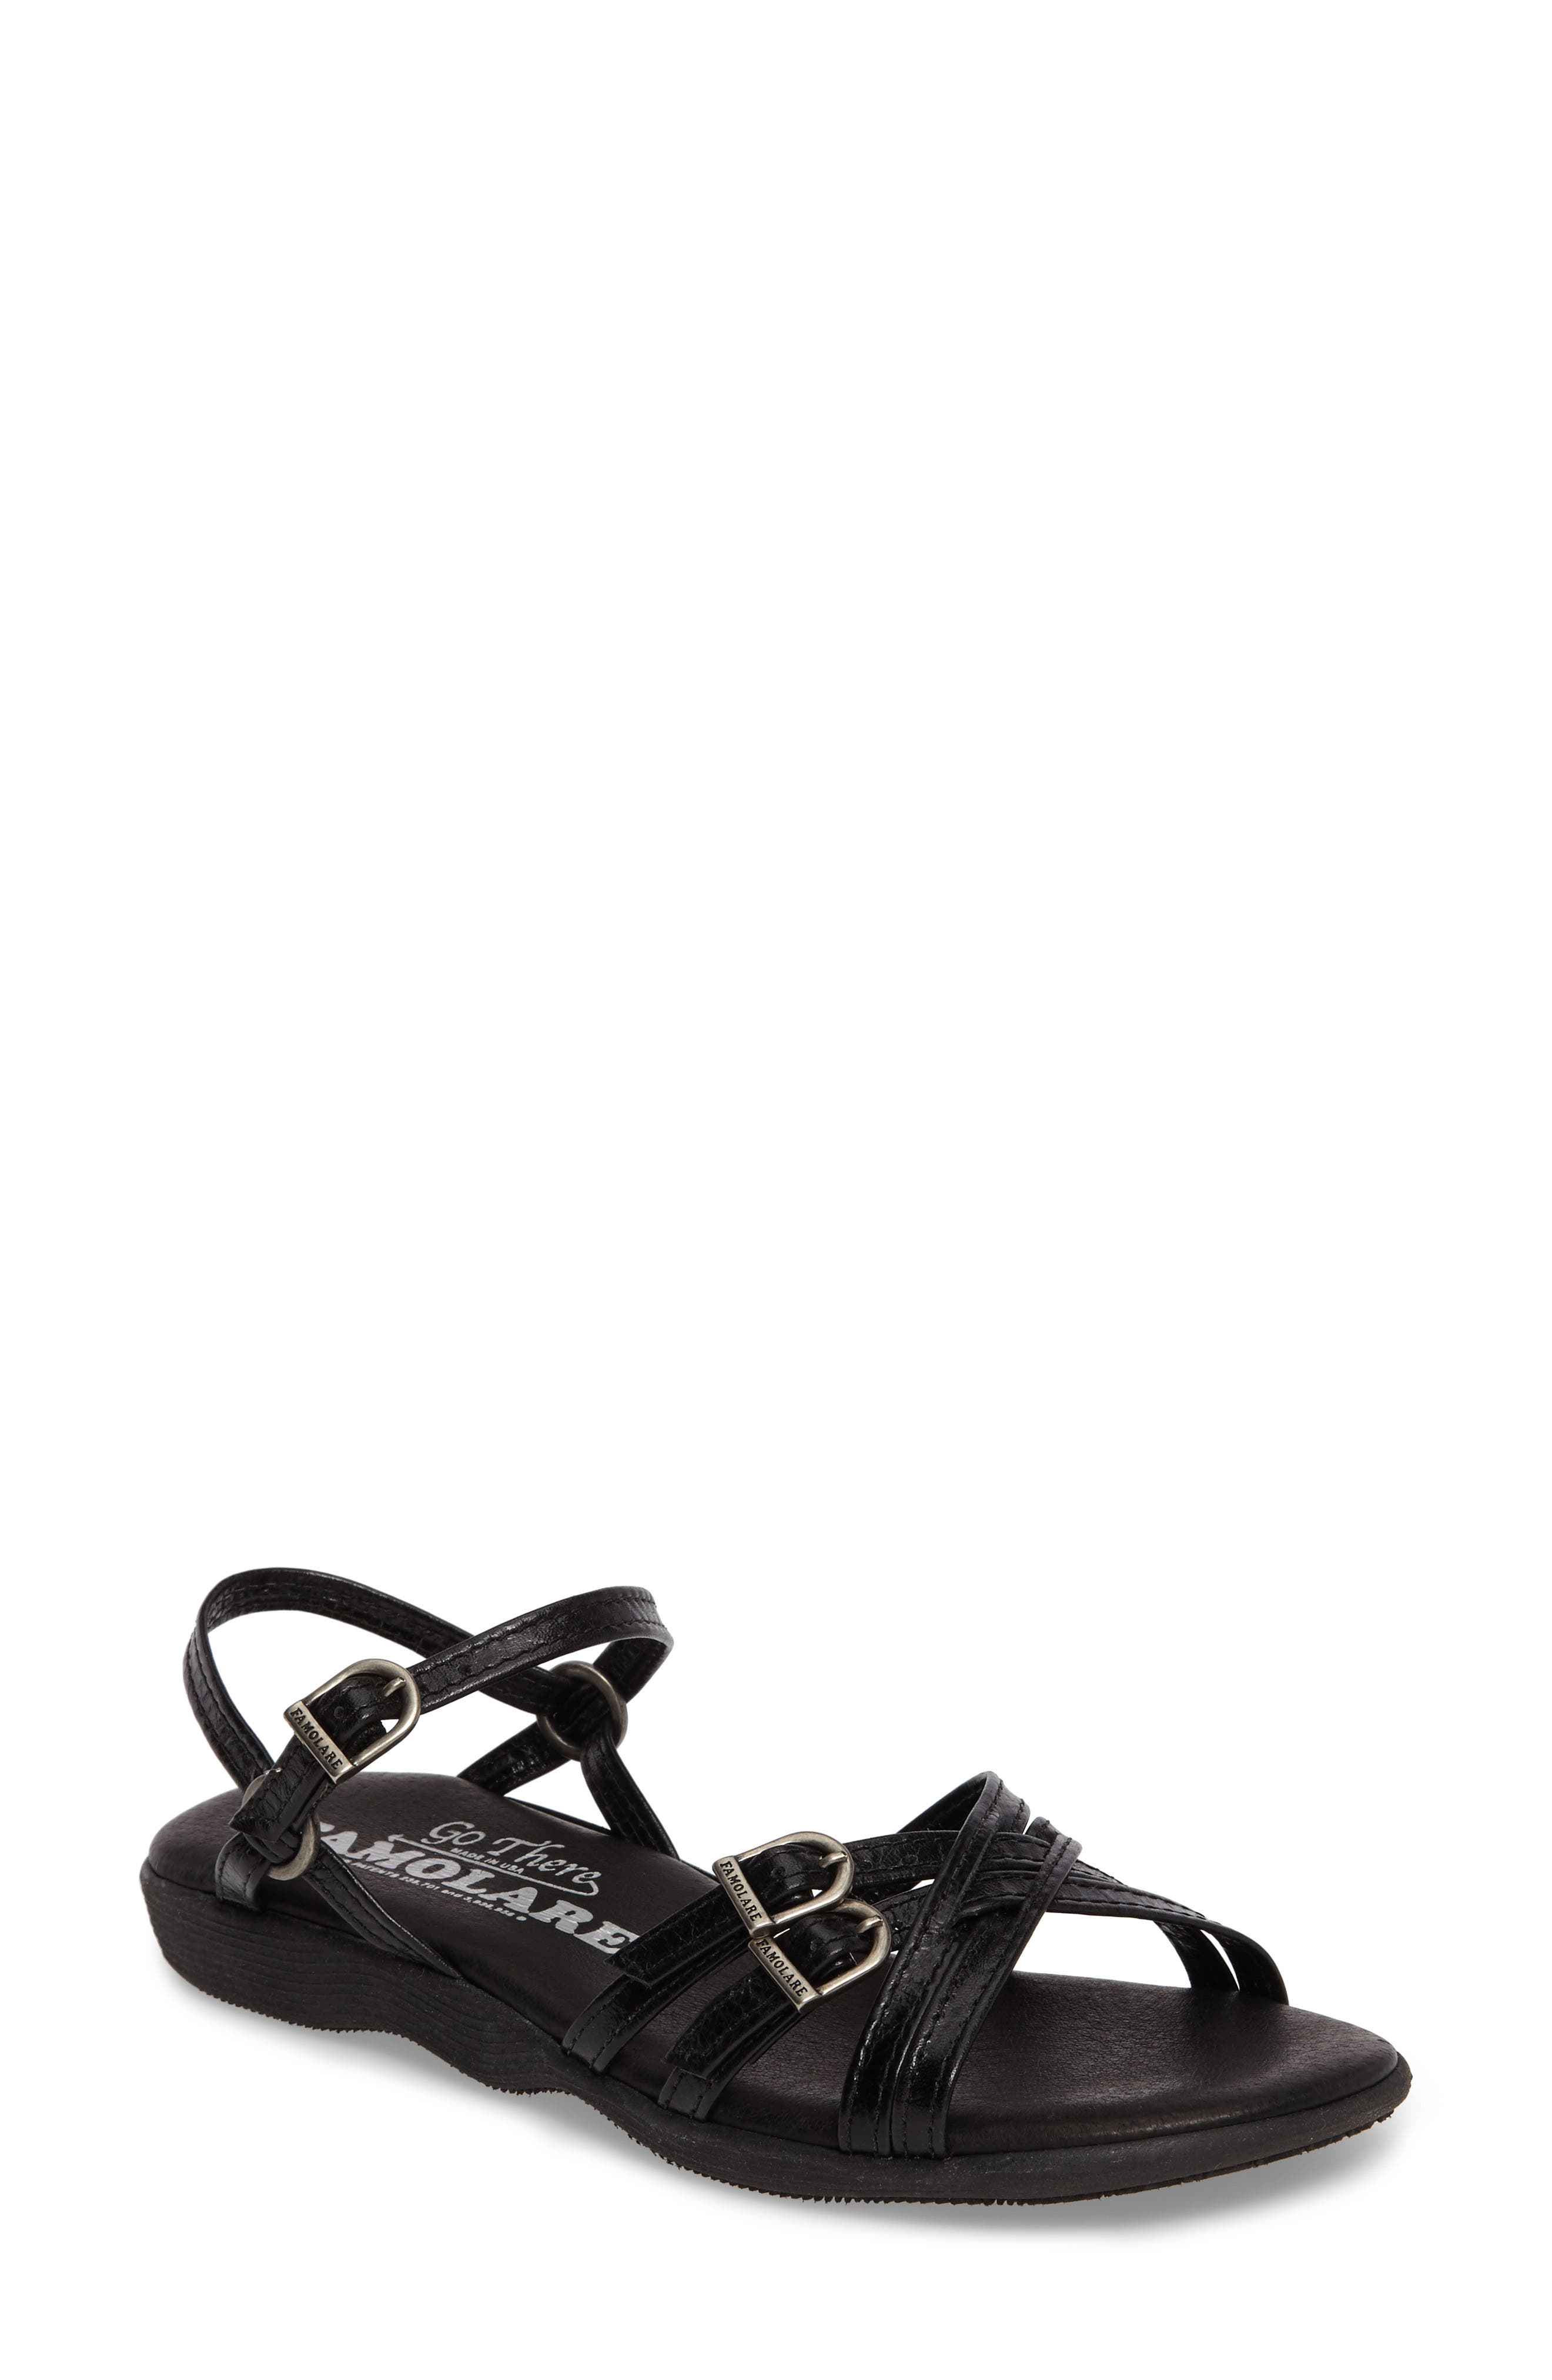 Strapsody Buckle Sandal,                             Main thumbnail 1, color,                             COAL LEATHER